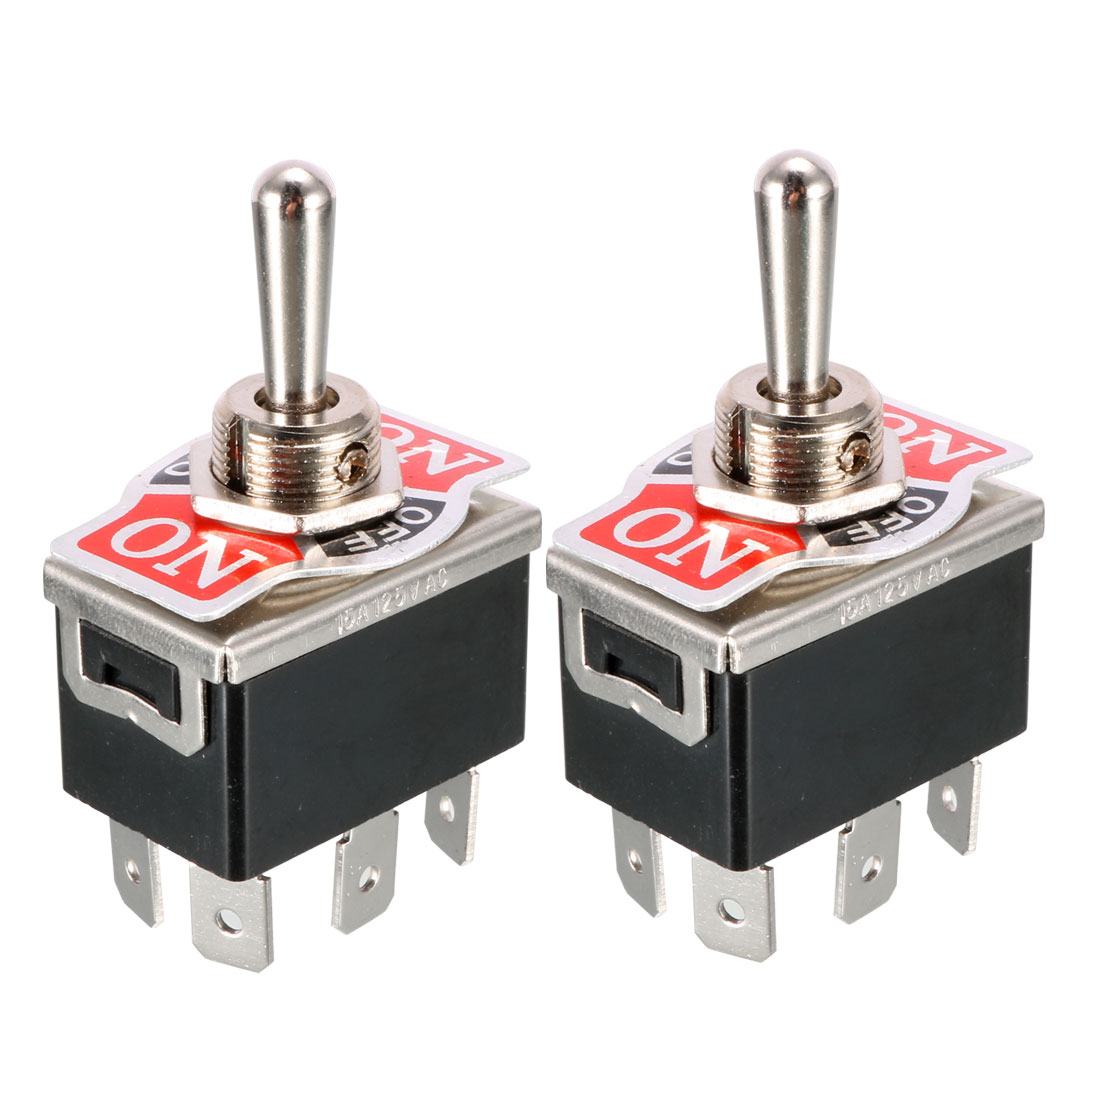 2 Pcs Black AC 250V/10A 125V/15A DPDT 3 Position ON/OFF/ON 6 Pins Toggle Switch